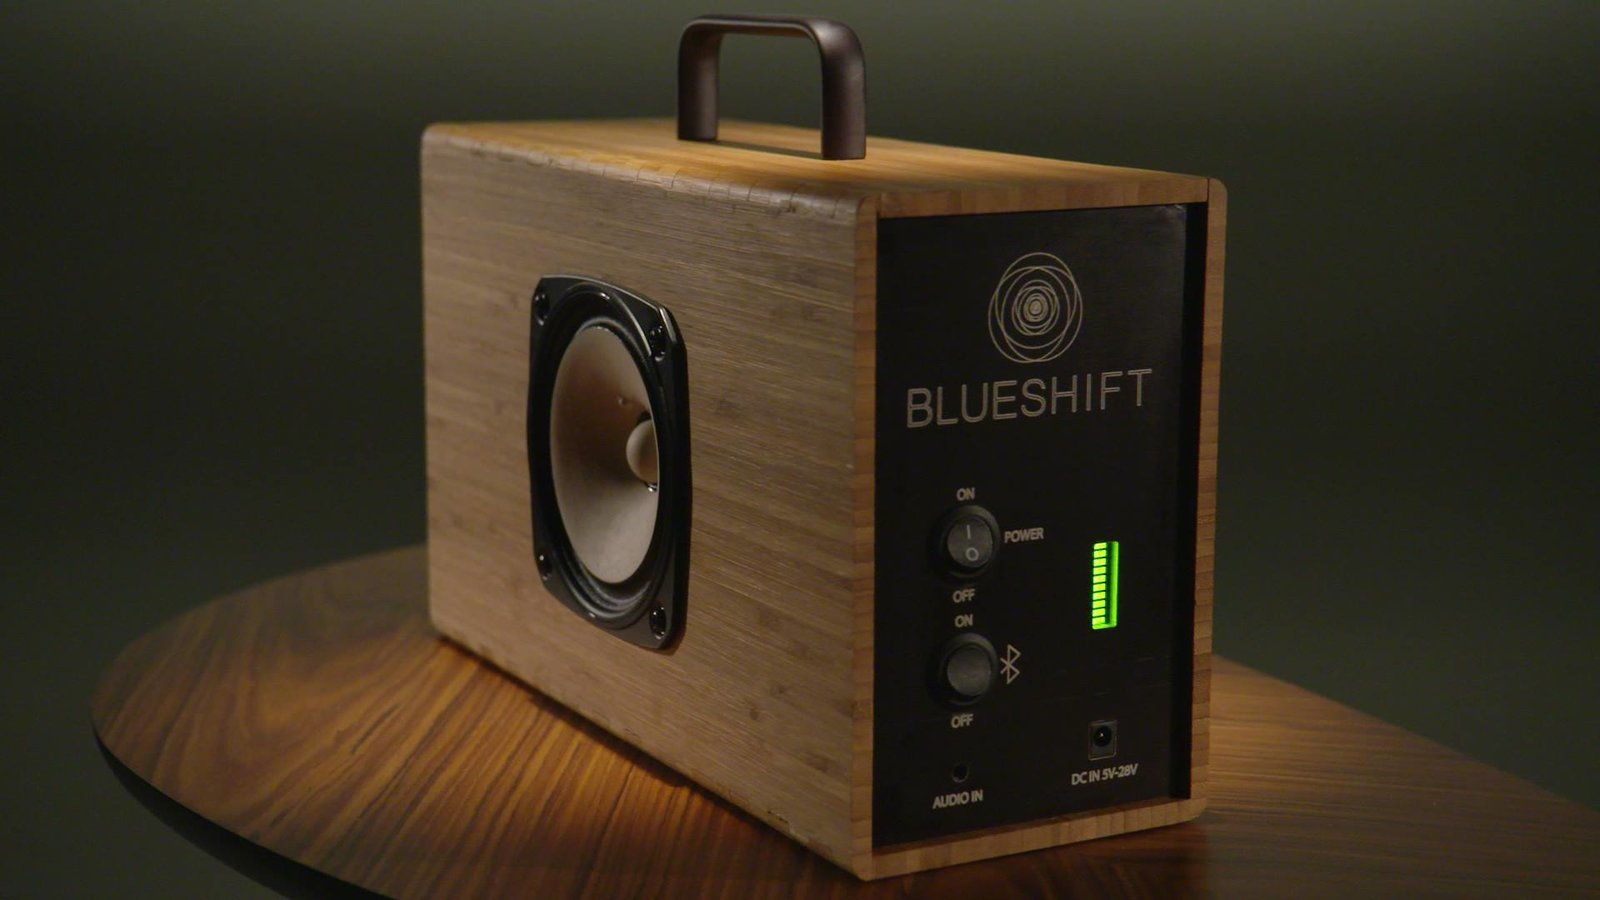 "Blueshift portable speaker. ""Blueshift speakers charge in five minutes. Simple, beautiful devices - built to last in Portland, Oregon."" https://www.crowdsupply.com/blueshift/hydrogen-next-generation-supercapacitor-powered-portable-speaker  https://www.facebook.com/BlueshiftPDX"